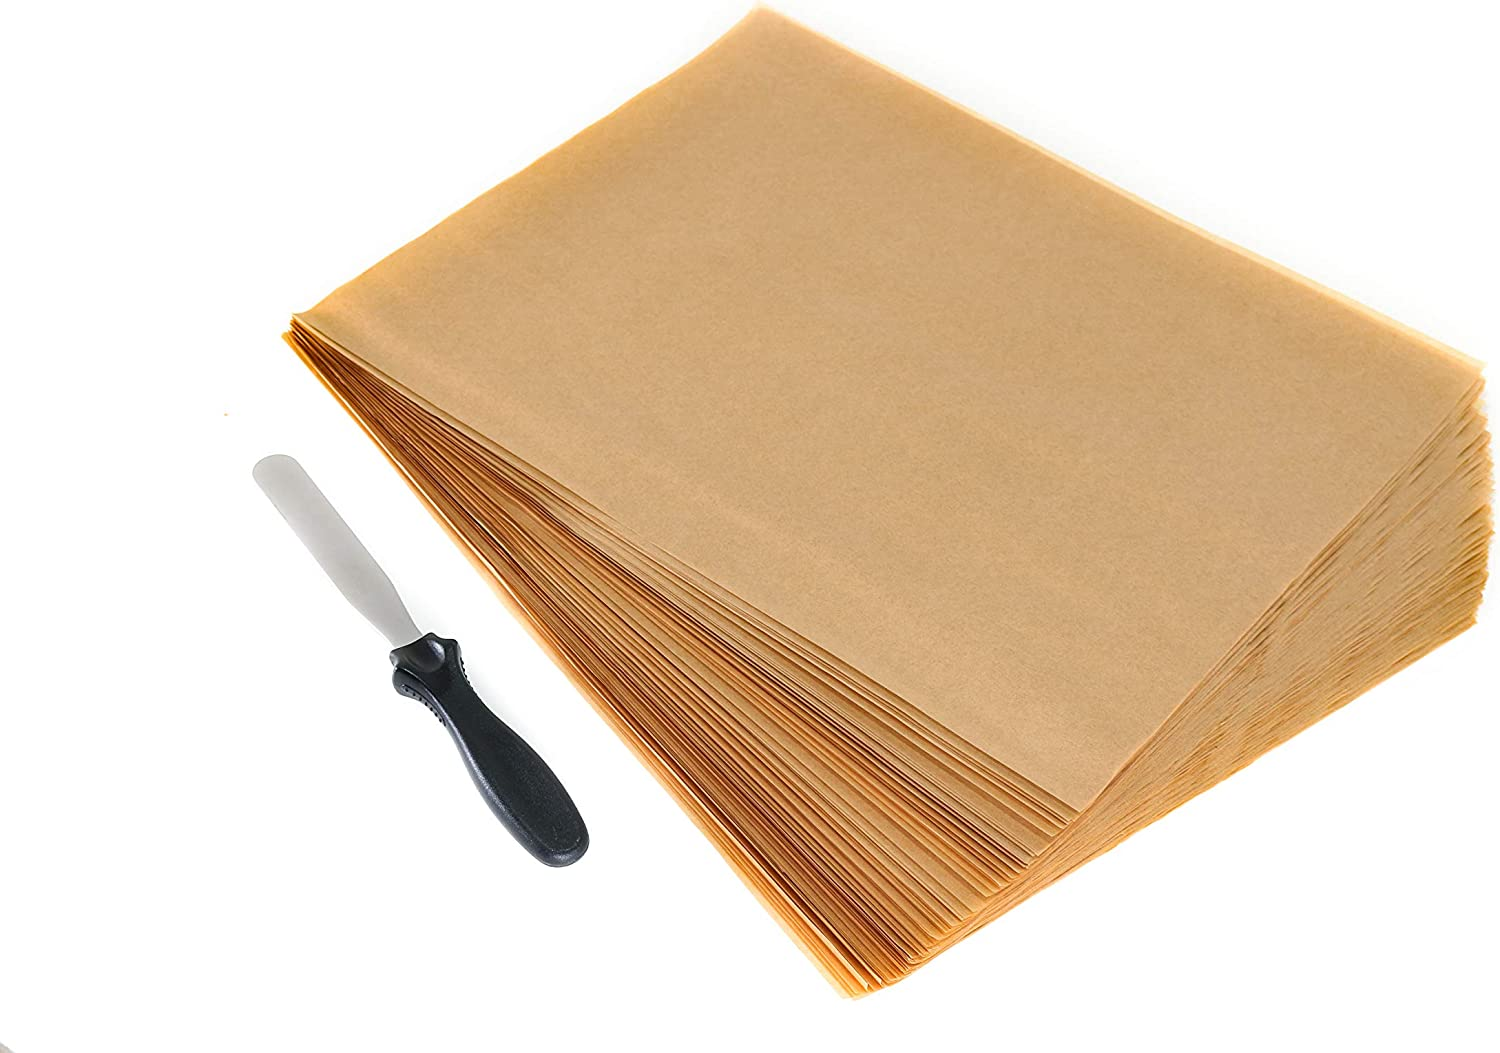 Mona Kai 100 Precut Unbleached Nonstick Parchment Baking Paper Sheet Liners 12 x 16 inches Complete with Stainless Steel Small Flat Spatula